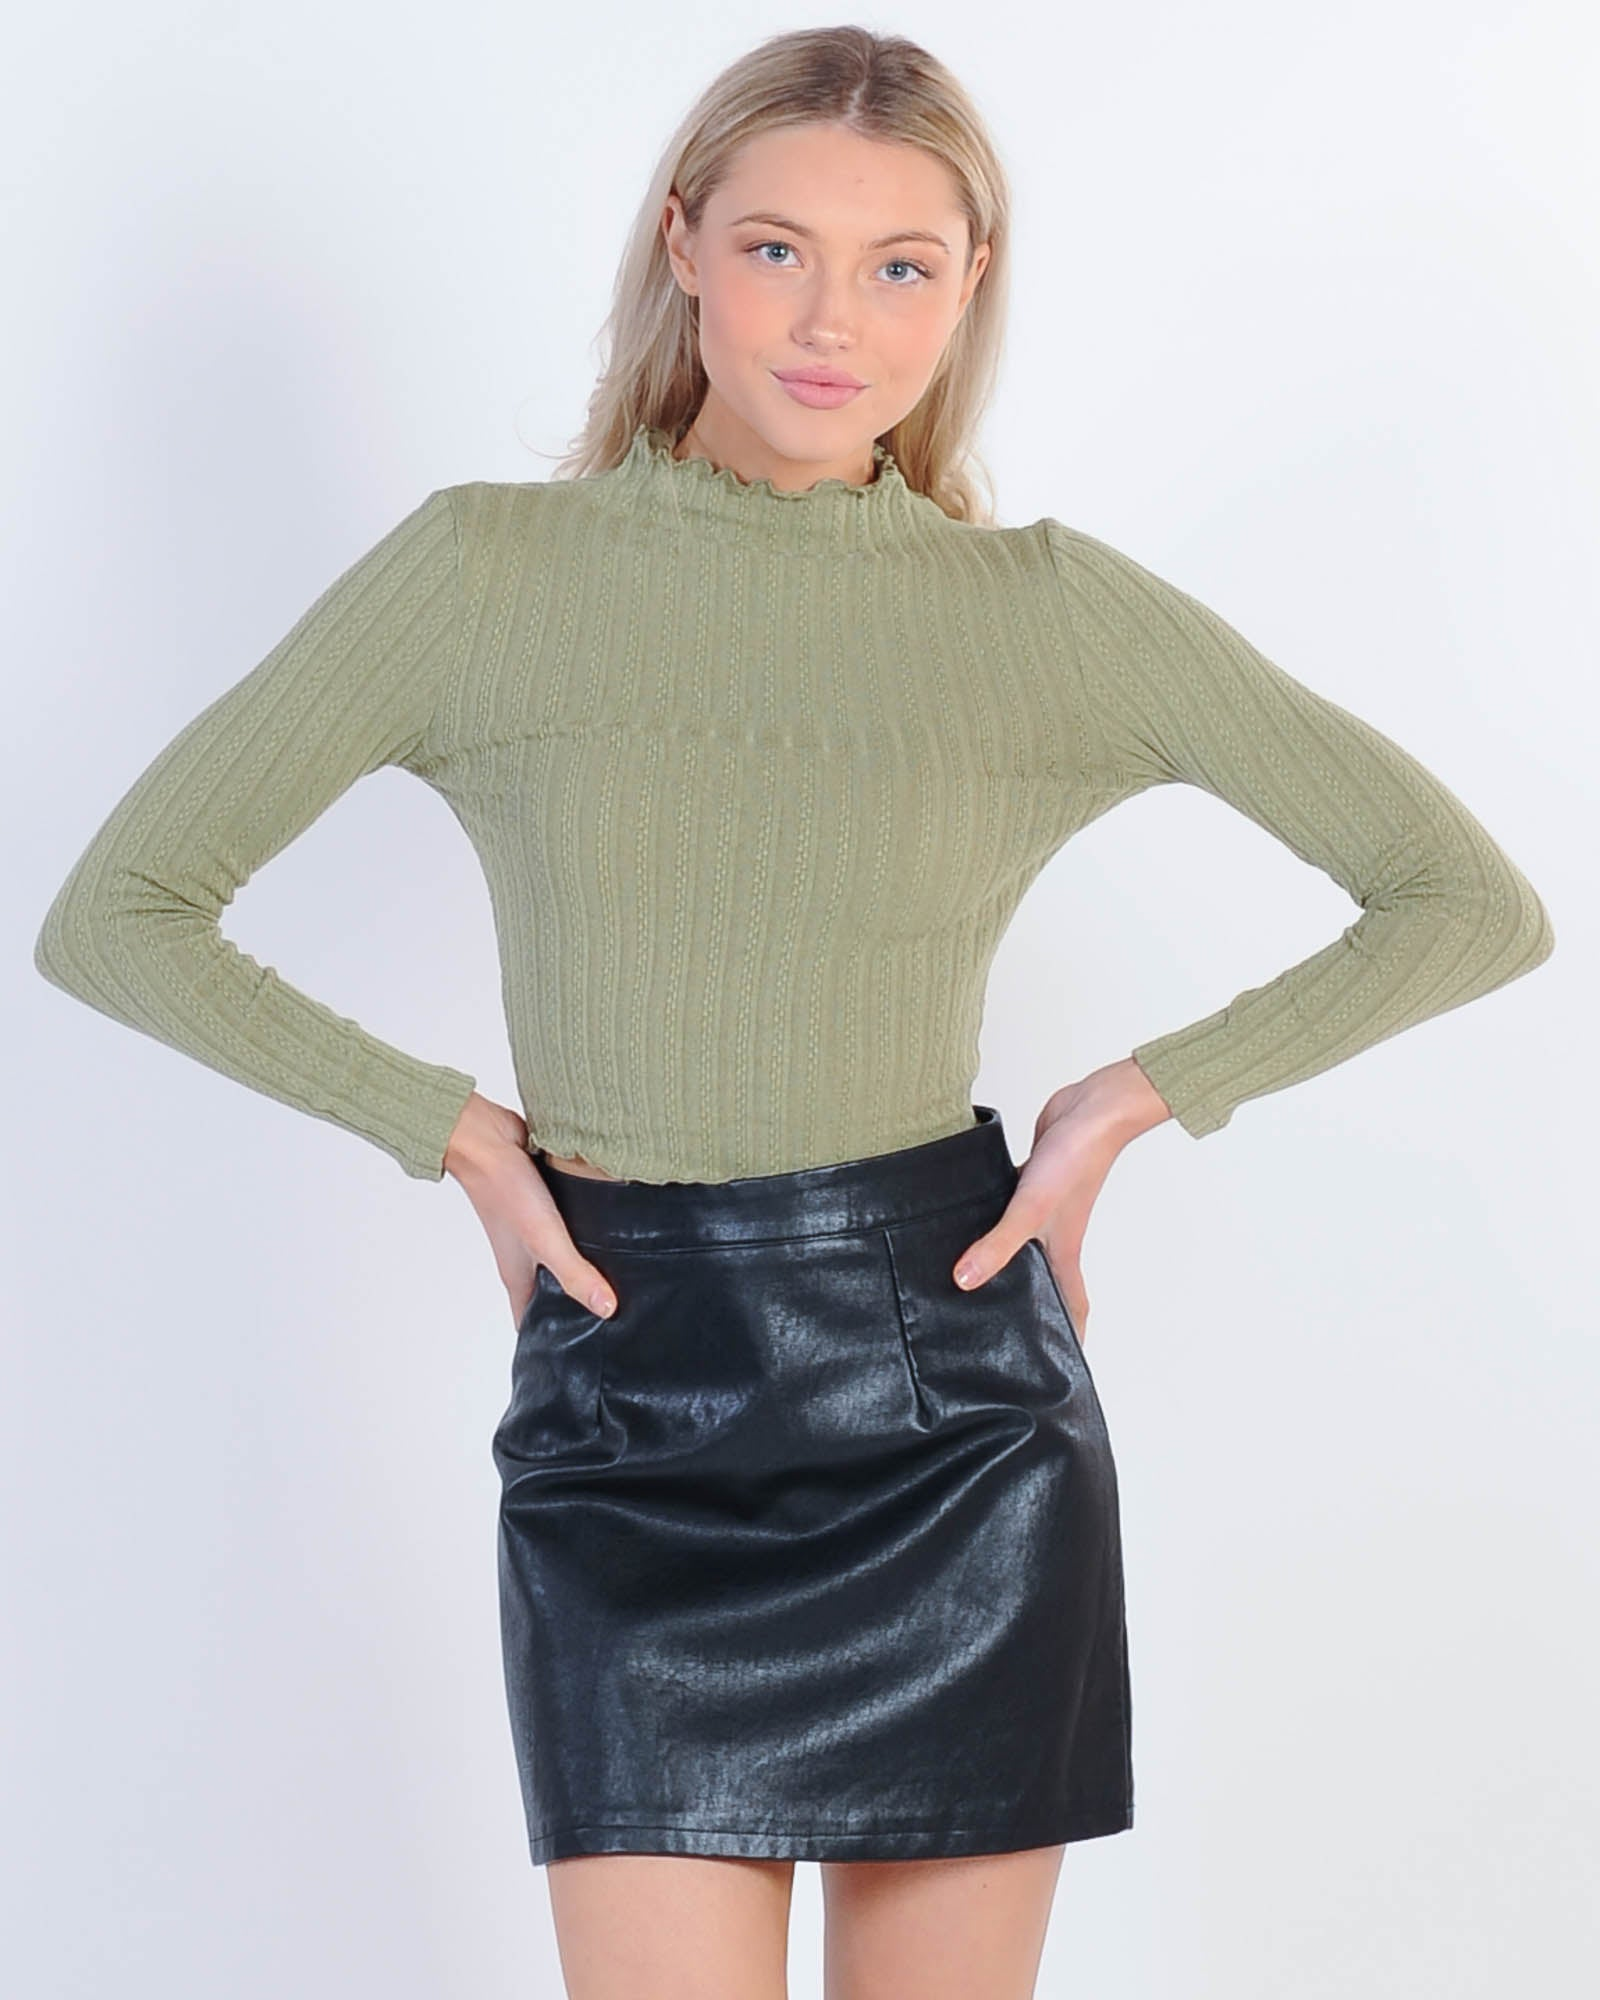 Private Party Top - Khaki